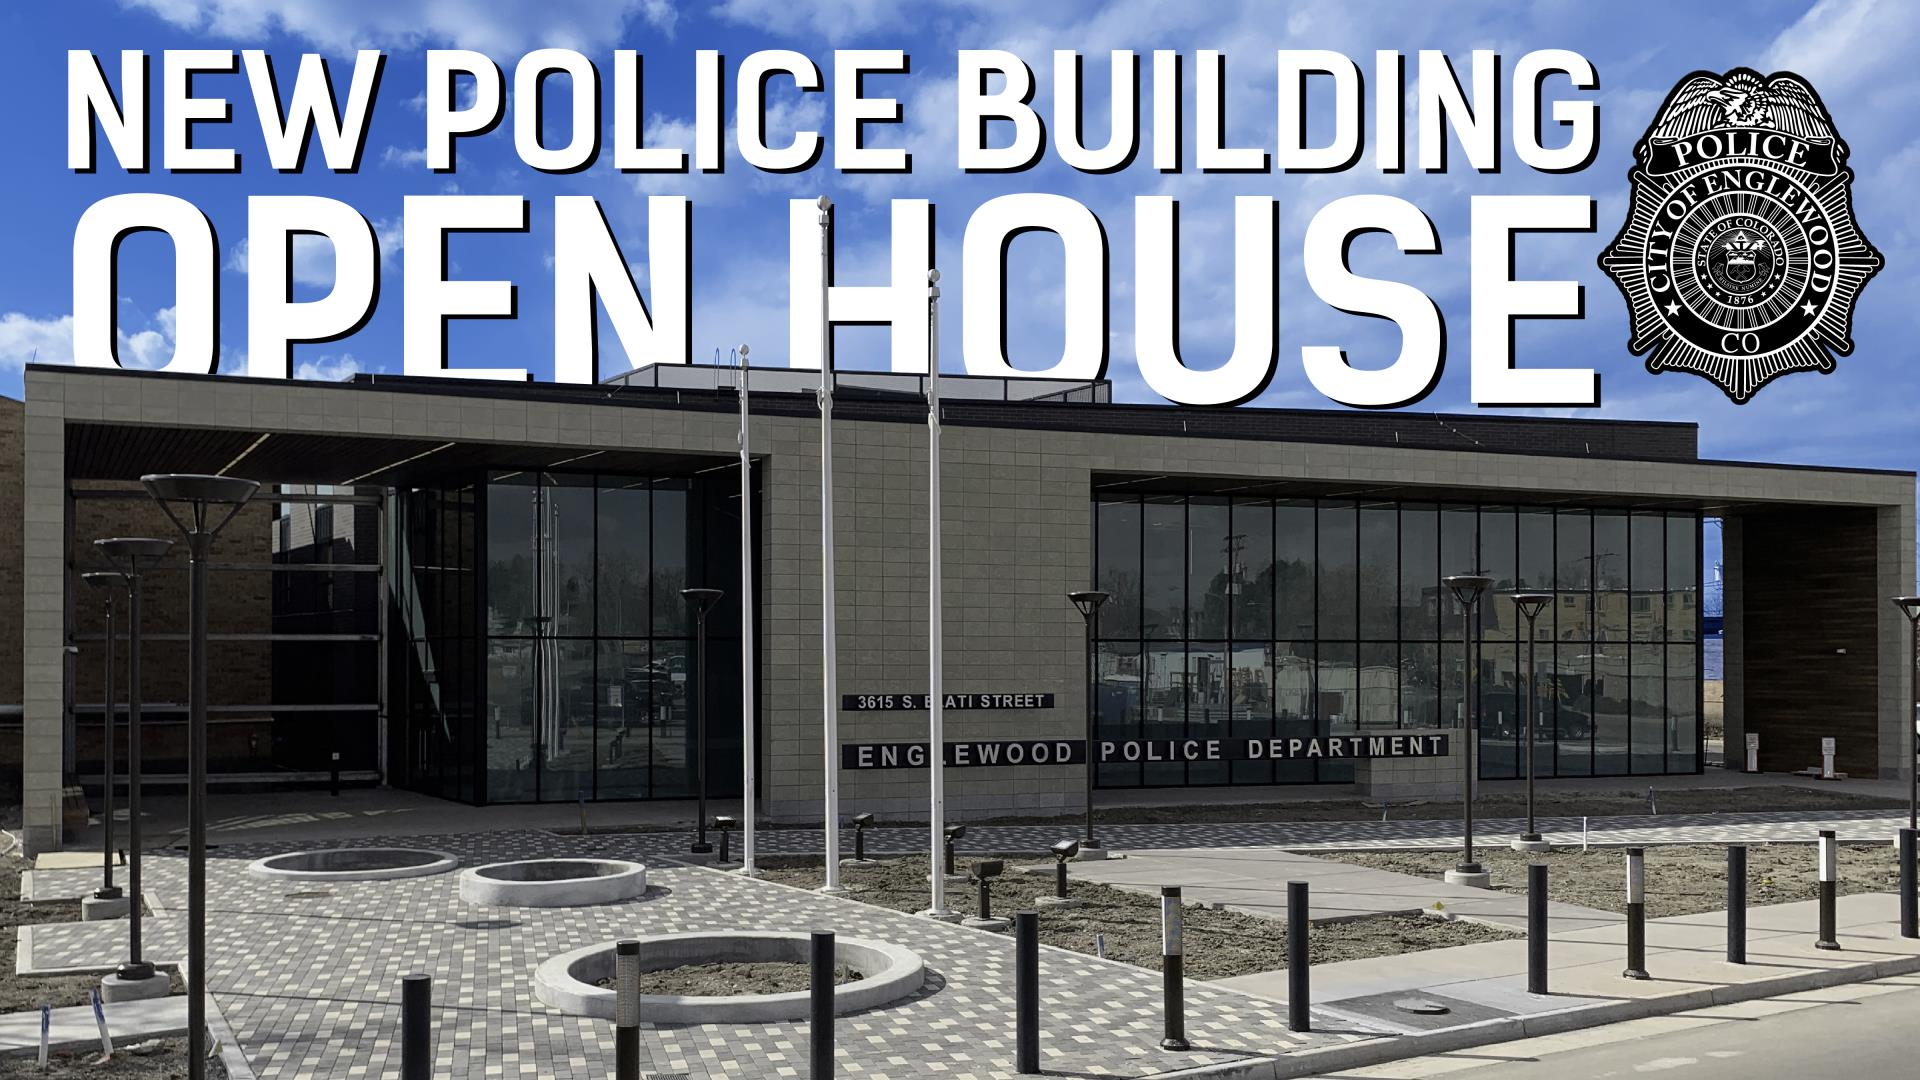 Police building open house_invite-01